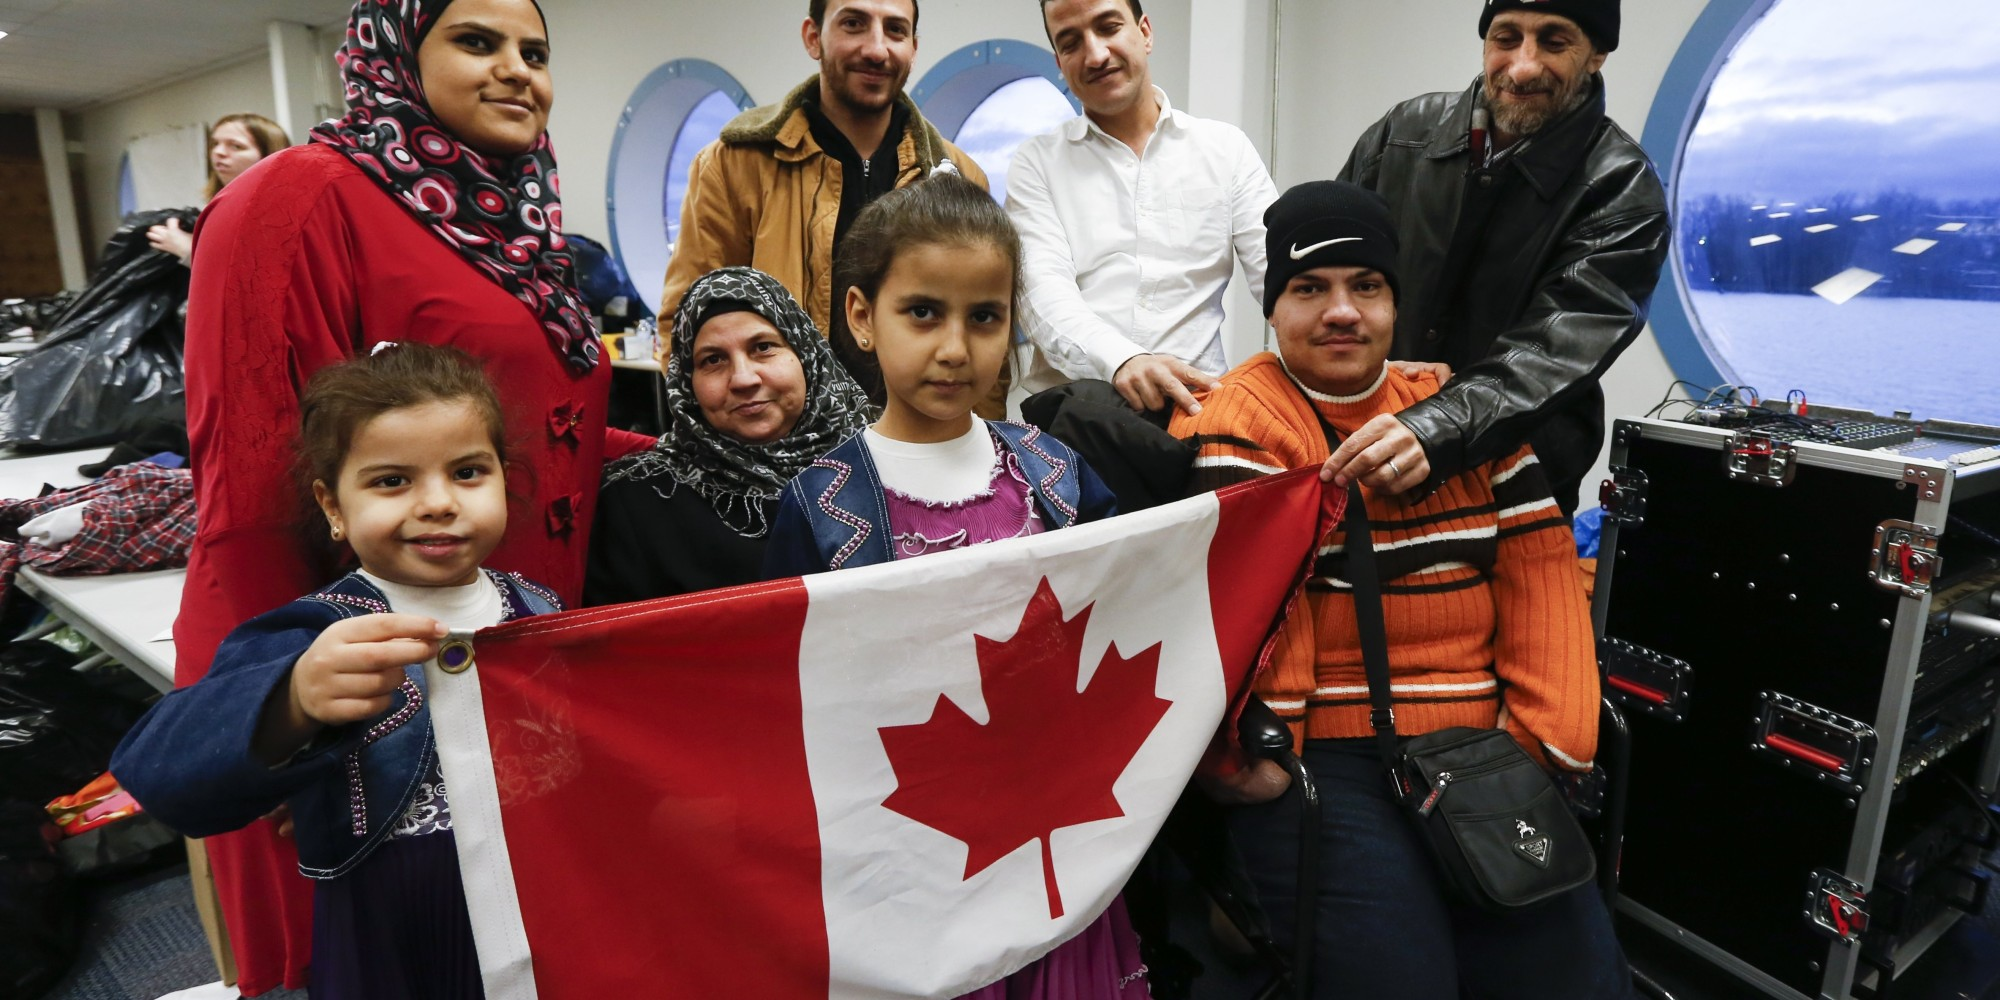 refugees in canada The government's commitment to resettle 25,000 refugees by the end of february is a strong start now it's time for canada to play a leading role in developing and.